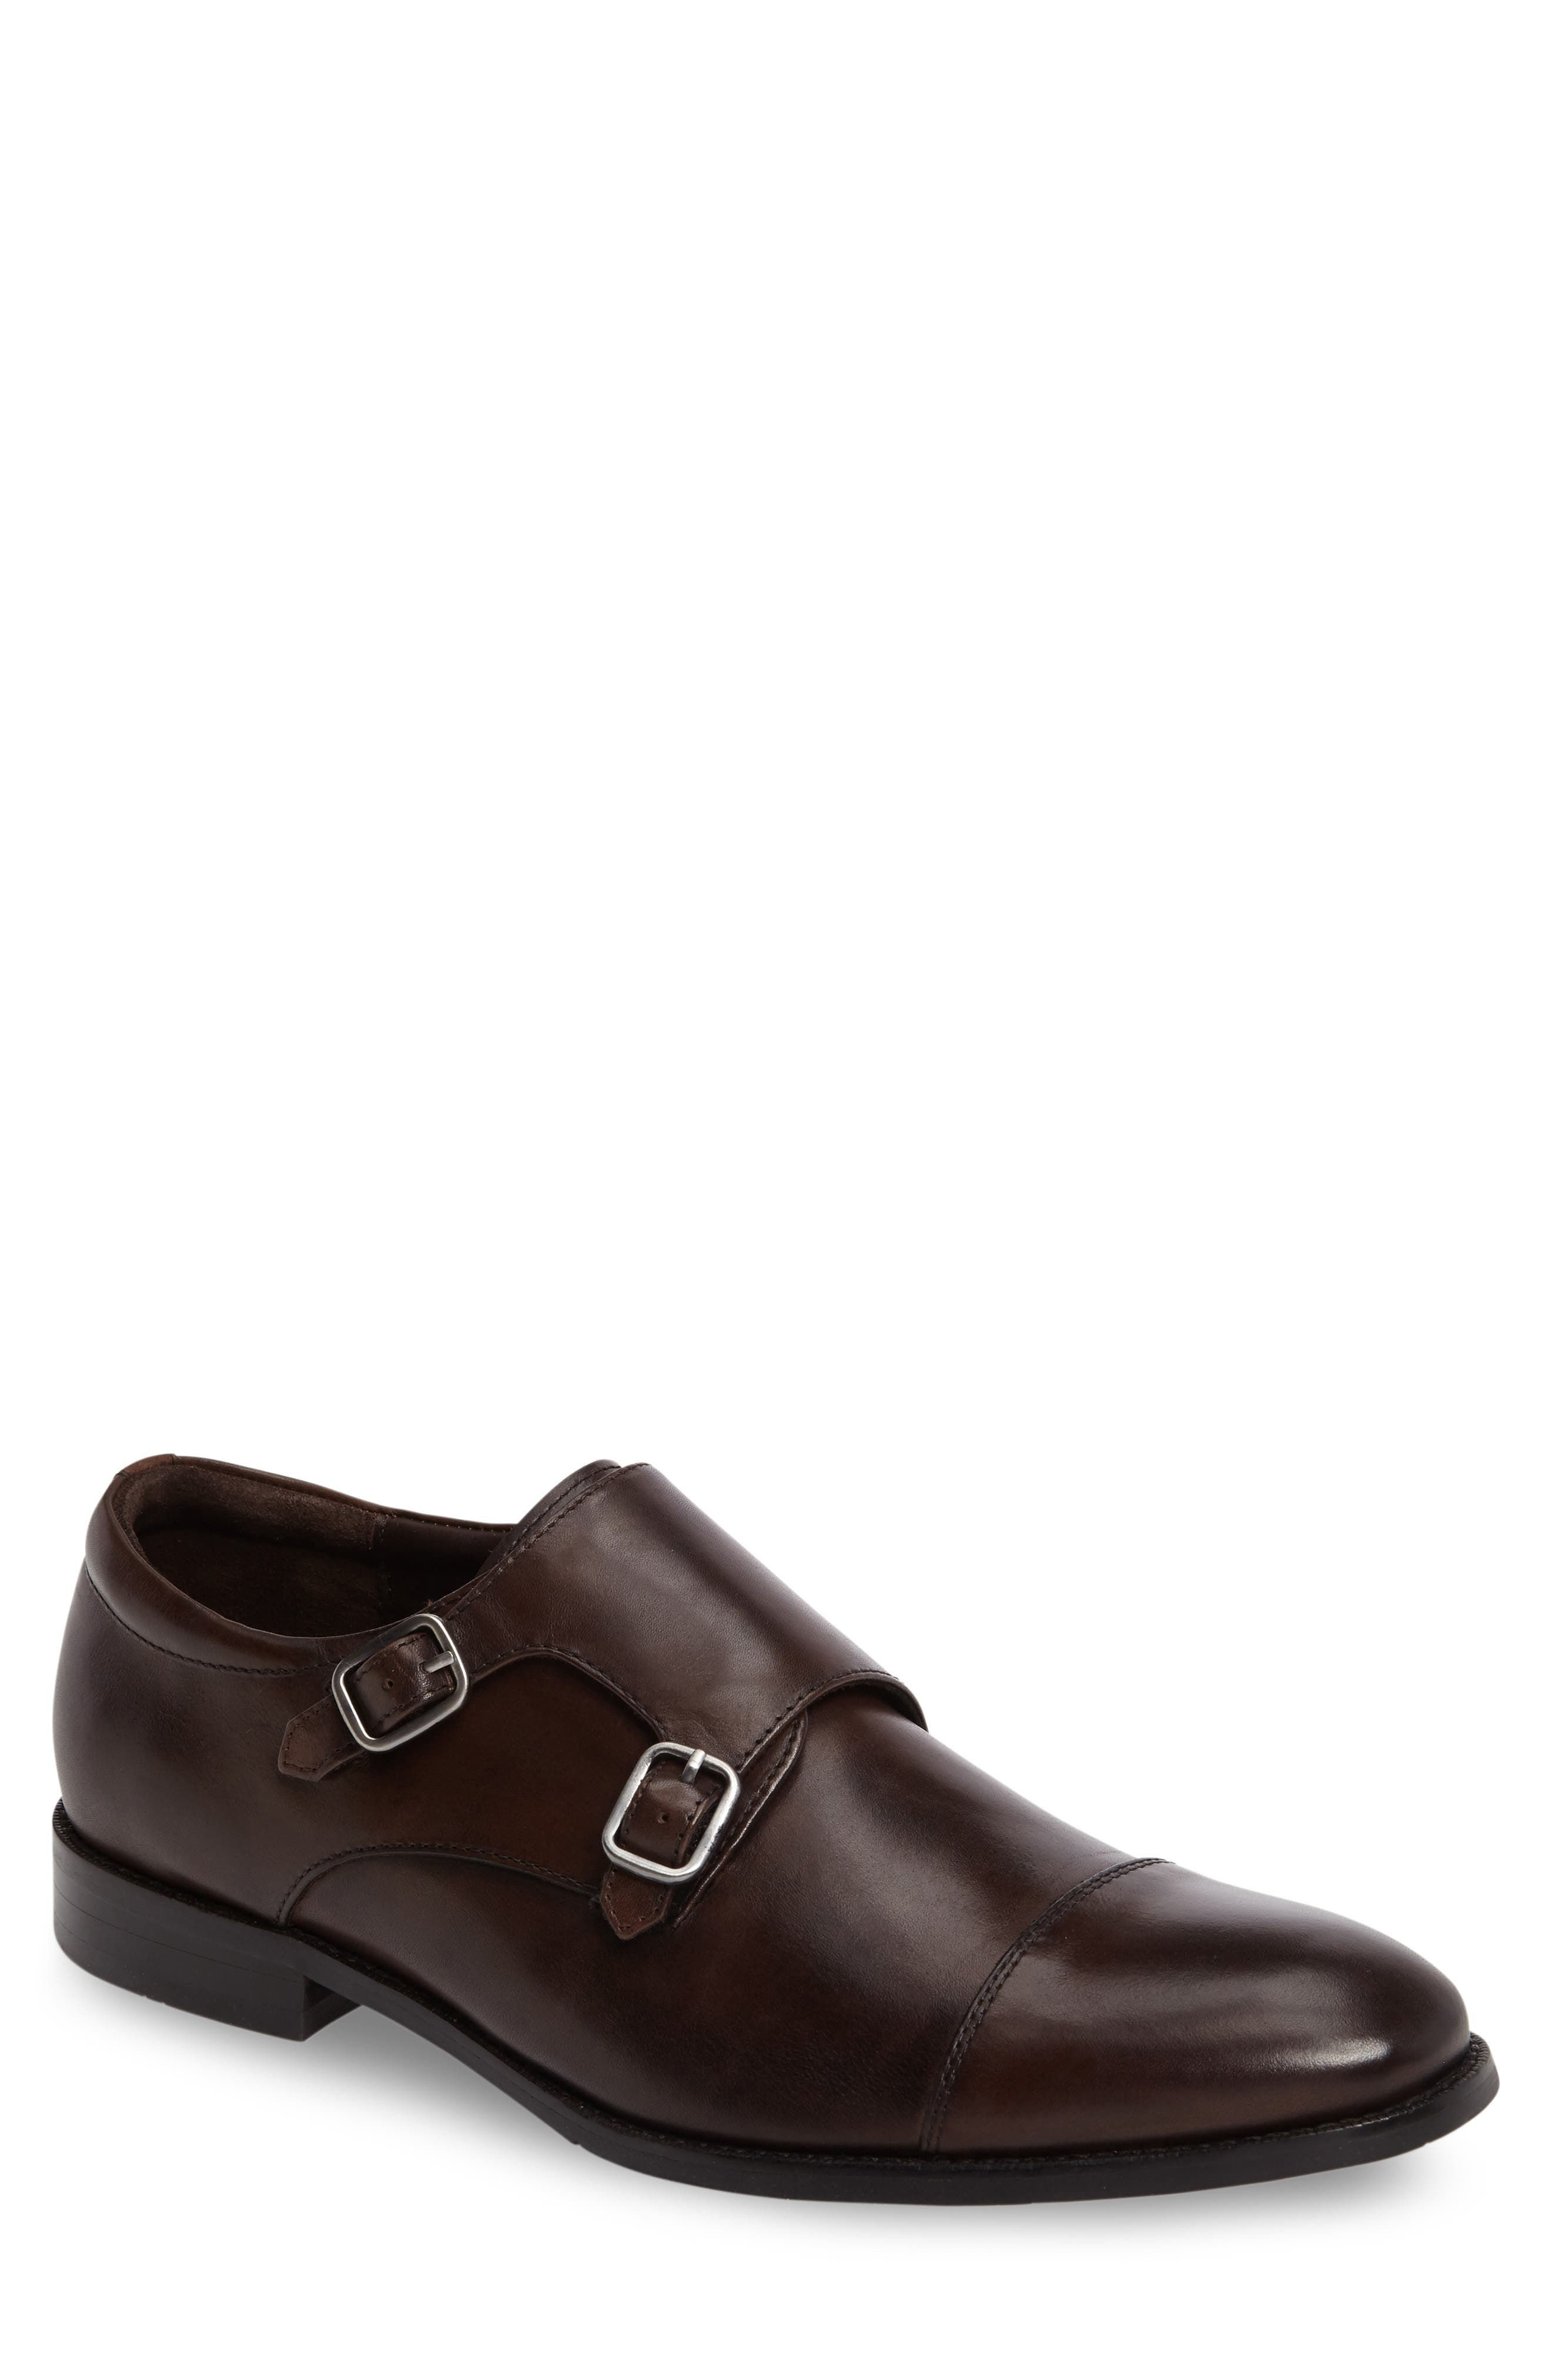 GORDON RUSH Abbott Double Monk Strap Shoe